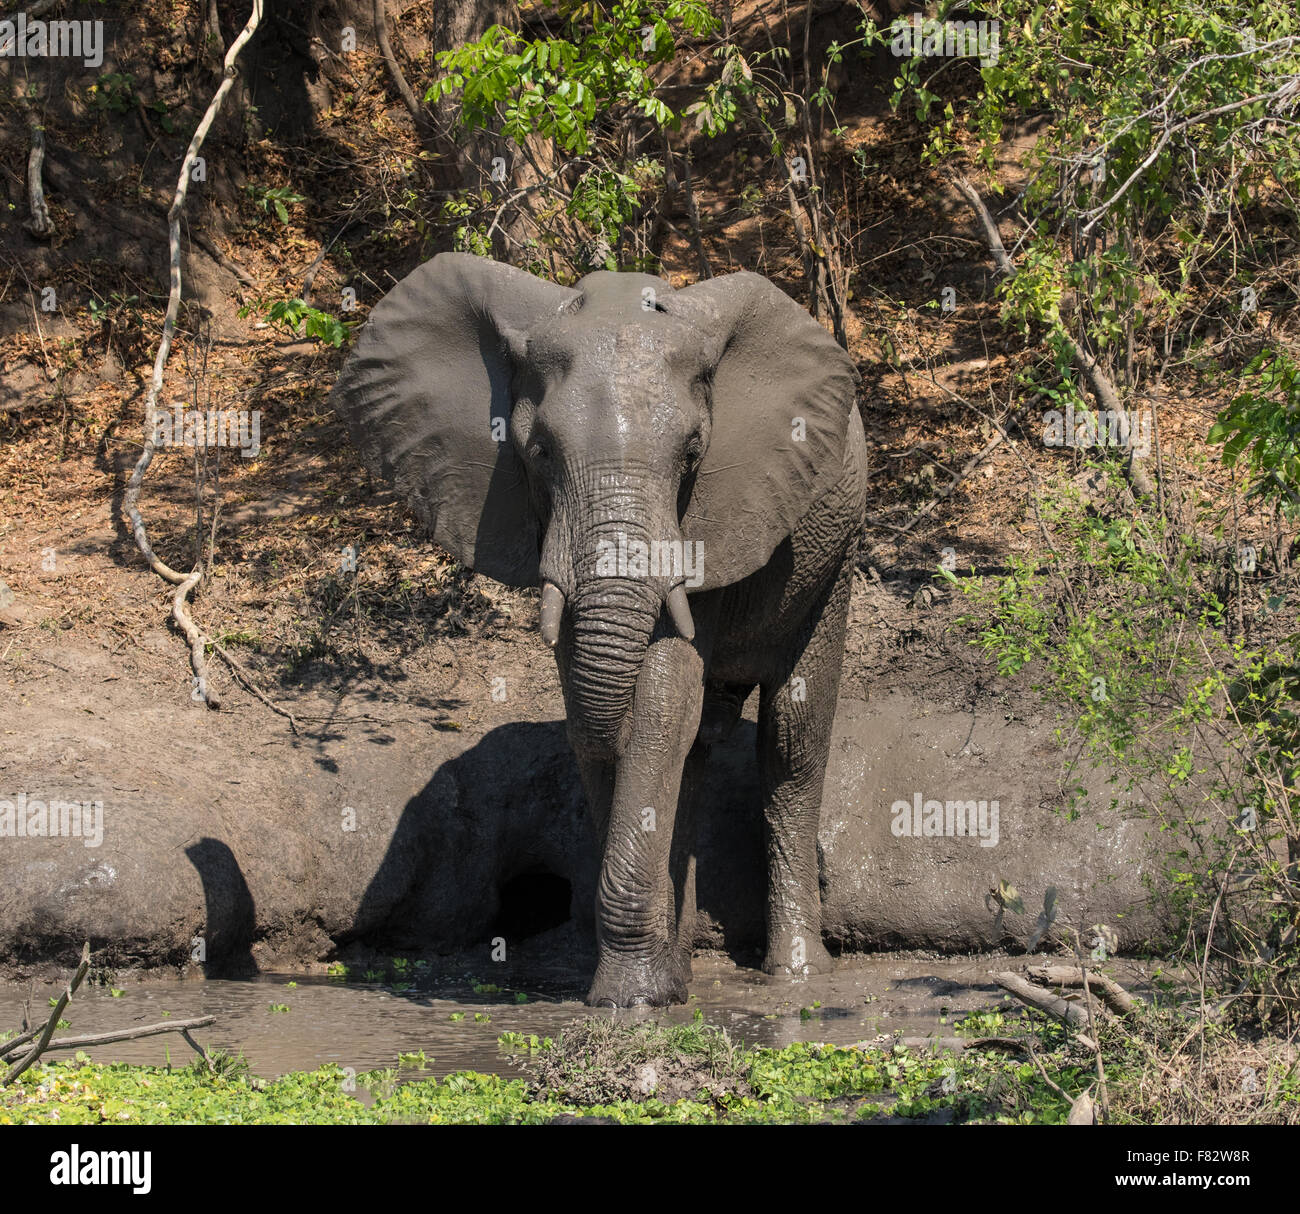 An elephant standing in a waterhole taking a mud bath Stock Photo